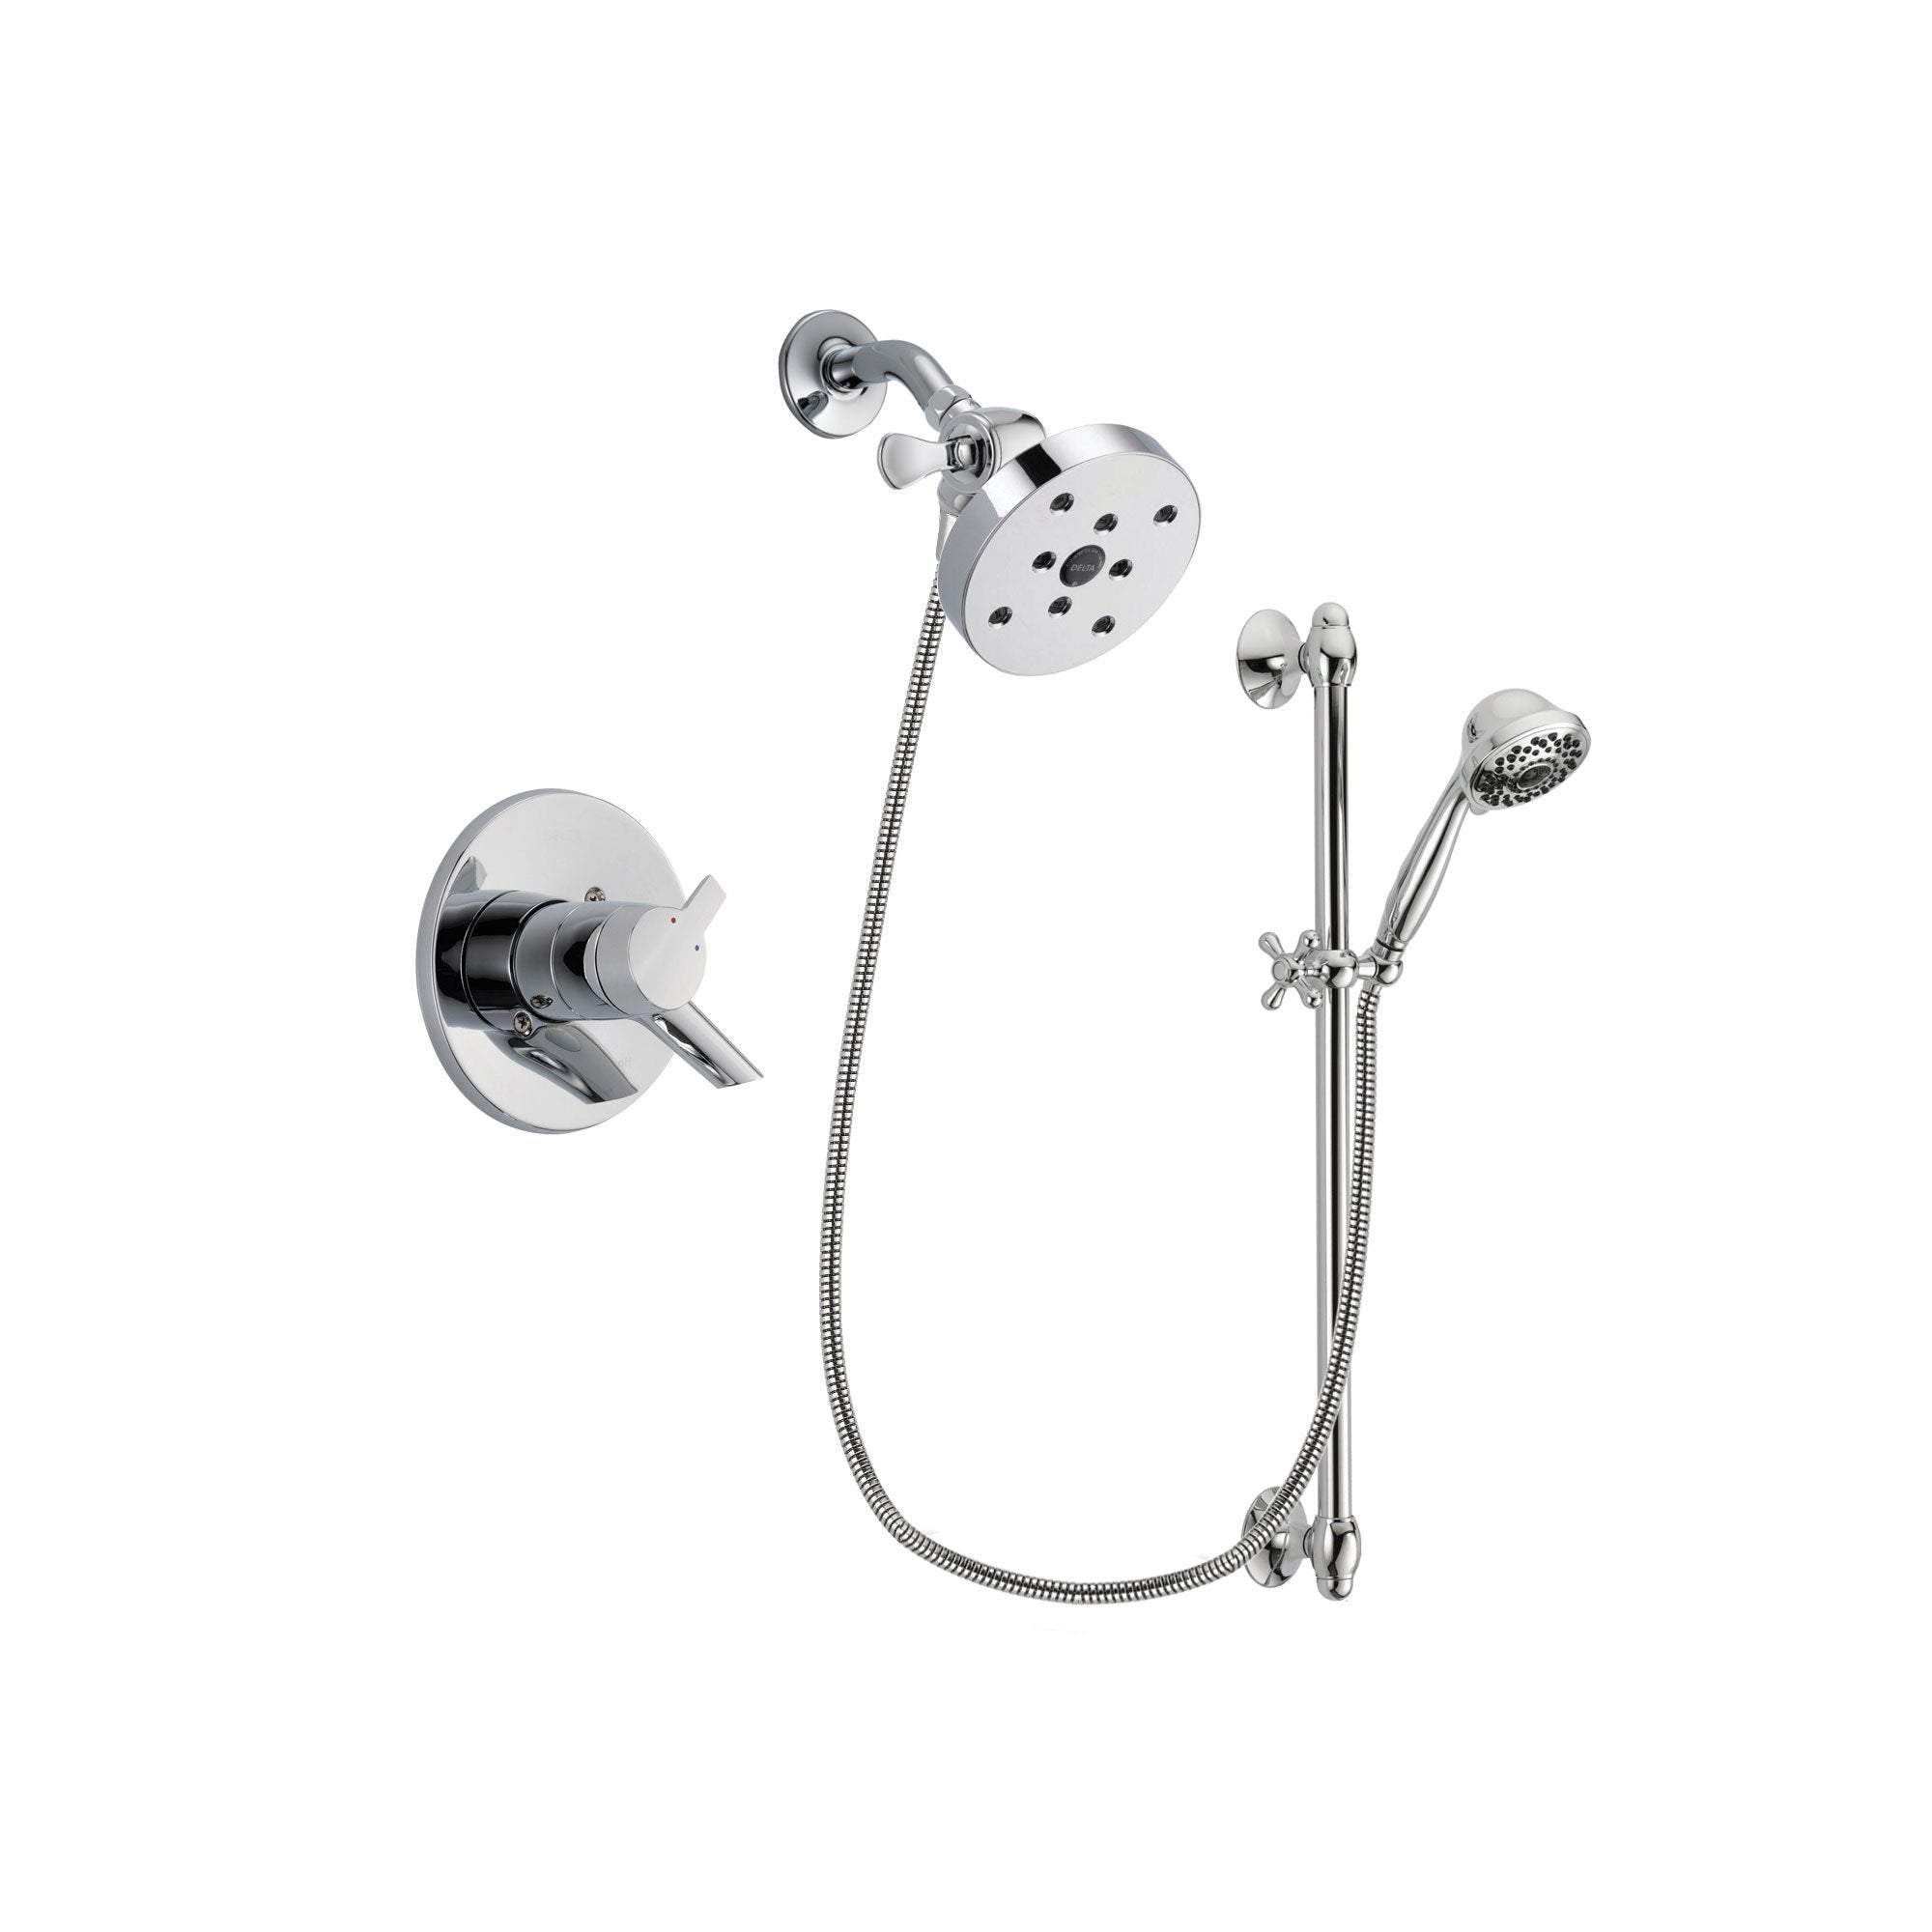 Delta Compel Chrome Shower Faucet System w/ Shower Head and Hand Shower DSP0688V